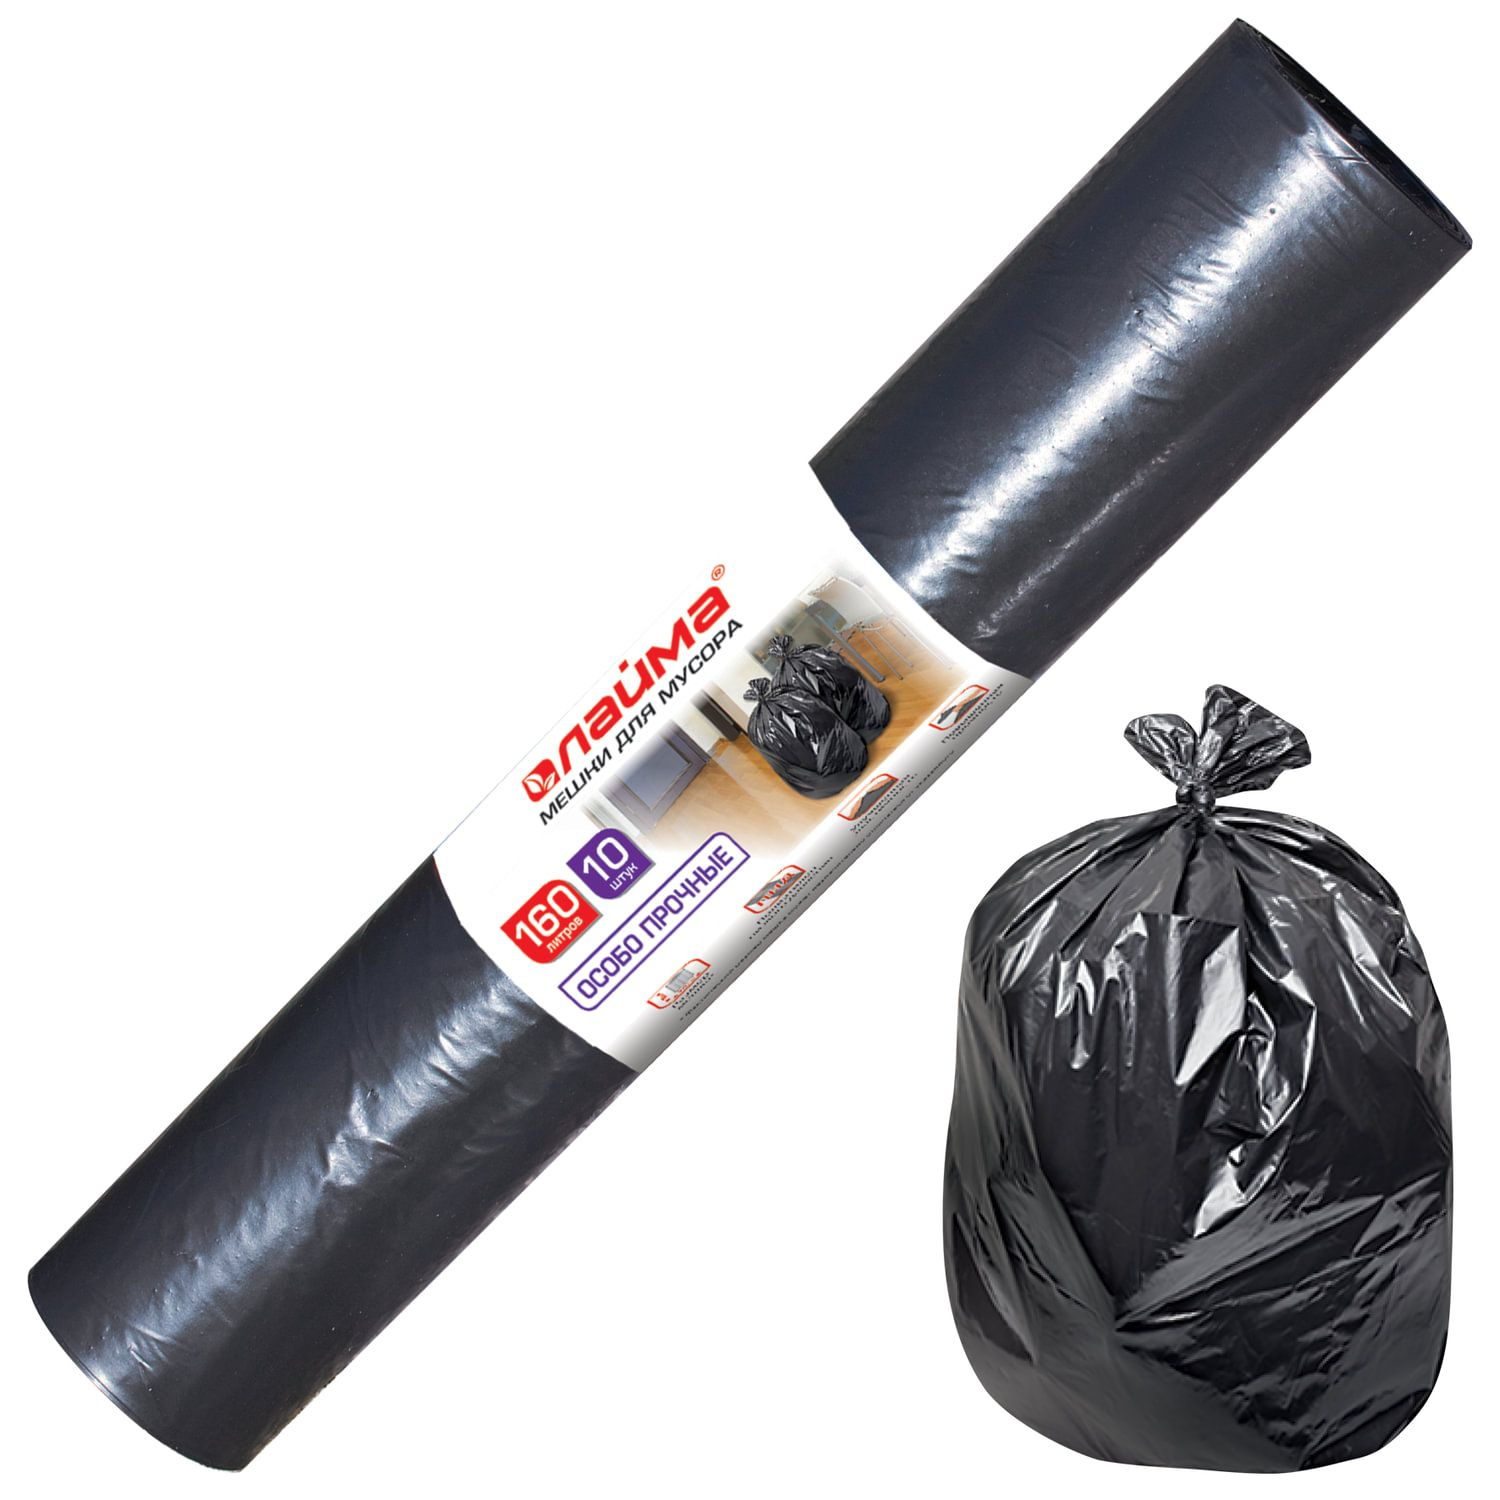 LIME / Garbage bags 160 l, black, 10 pcs per roll, LDPE, 100 microns, 90x110 cm (± 5%), extra strong